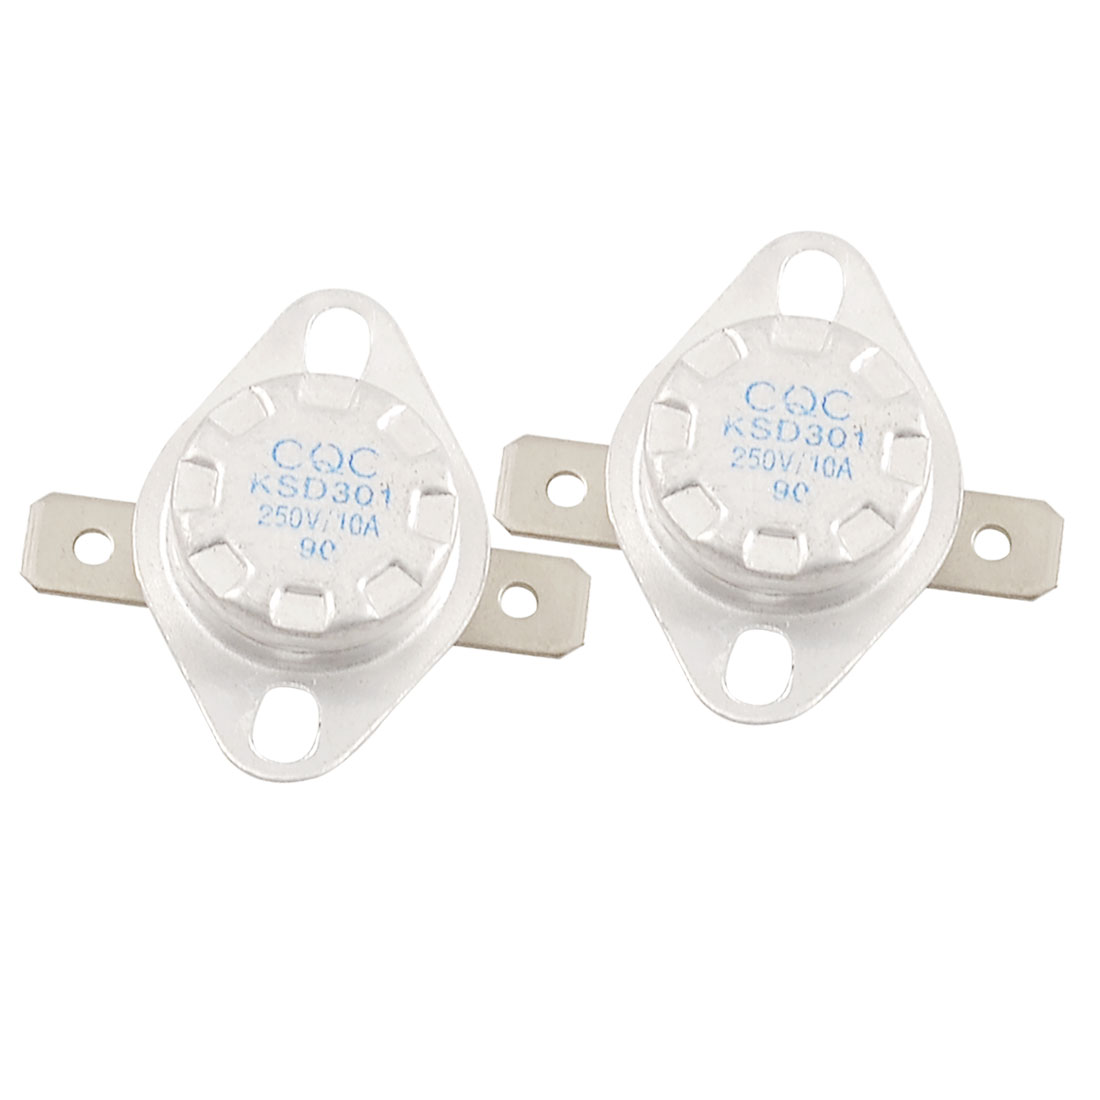 KSD301 90 Celsius Degree Ceramic Thermostat Temperature Switch NC